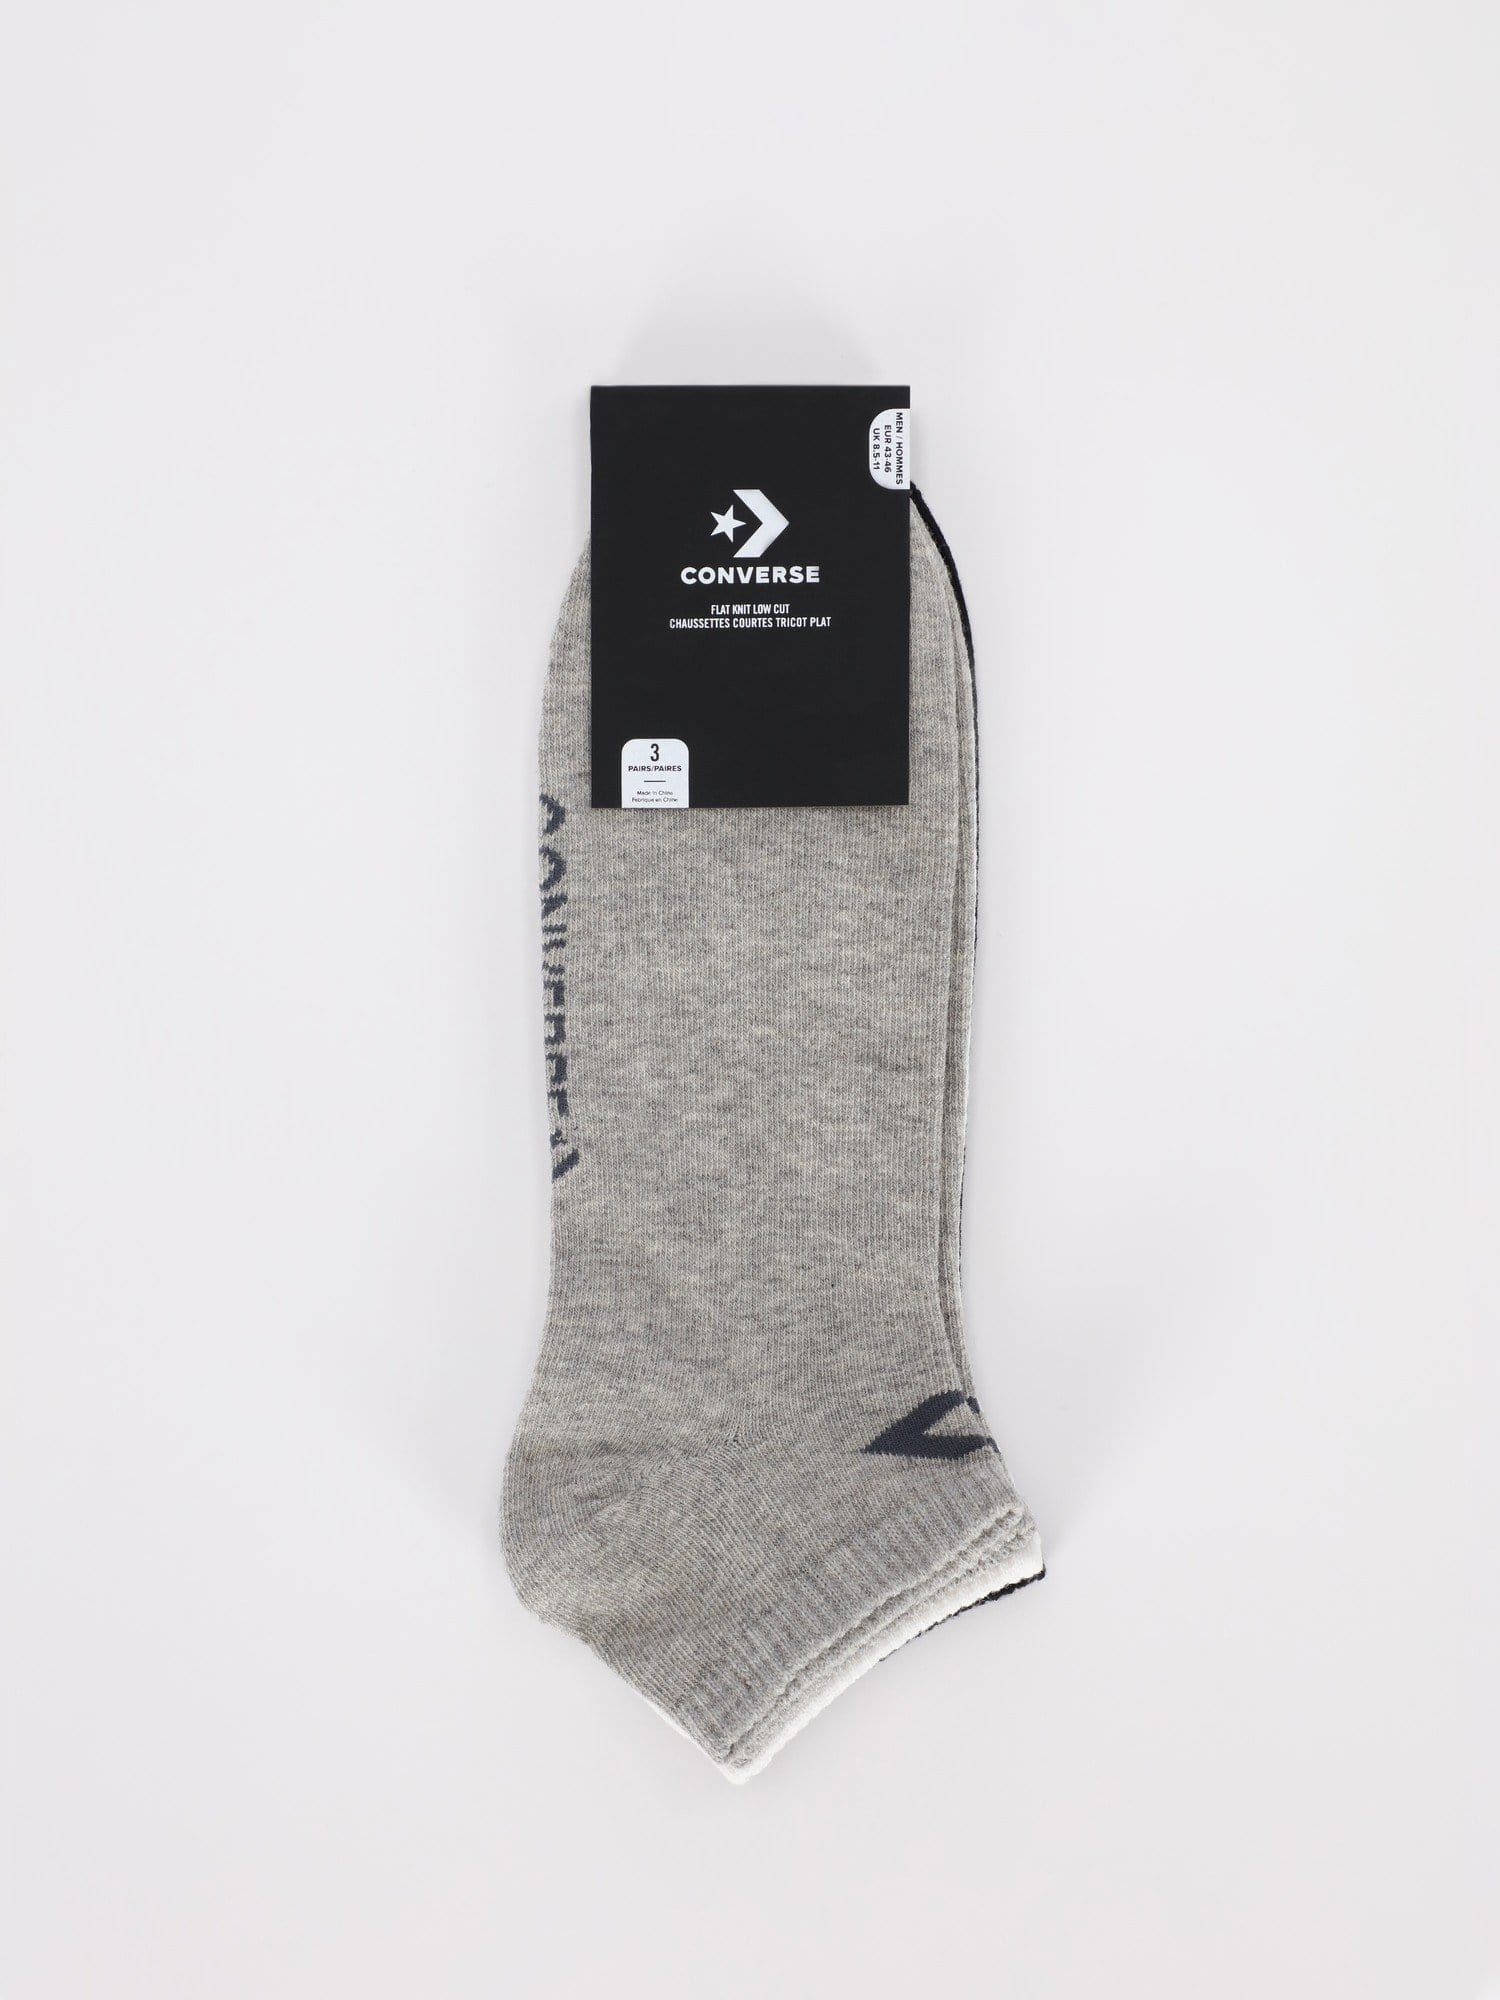 Converse Other Accessories 71 / 43-46 3 Pairs of Flat Knit Low Cut Socks with Star Chevron Logo - Light Grey/White/Black